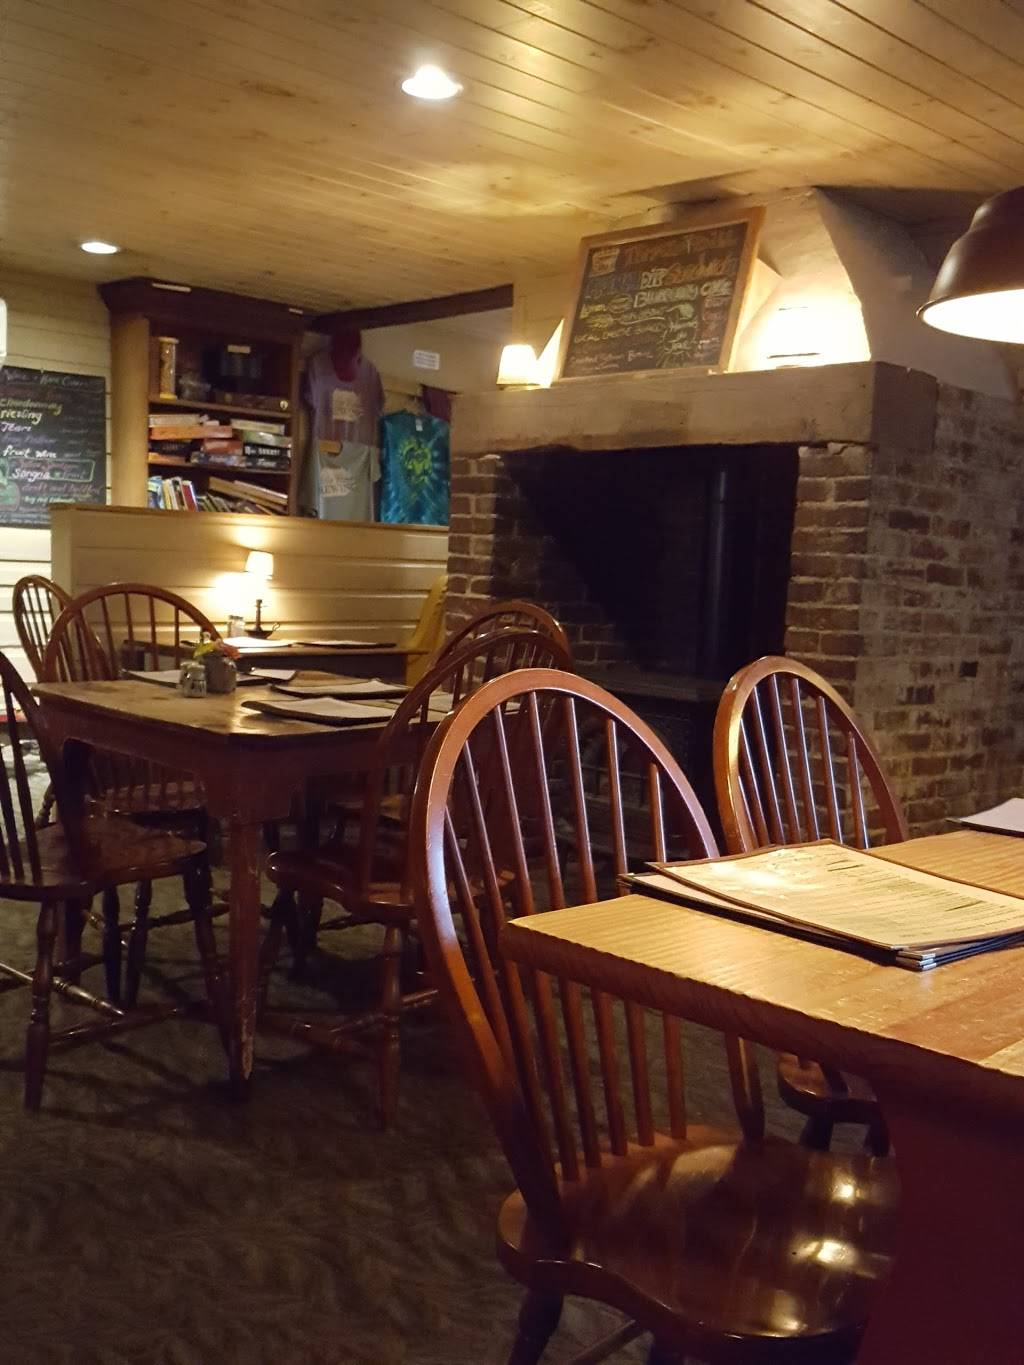 Selins Grove Brewing | restaurant | 121 N Market St, Selinsgrove, PA 17870, USA | 5703747308 OR +1 570-374-7308